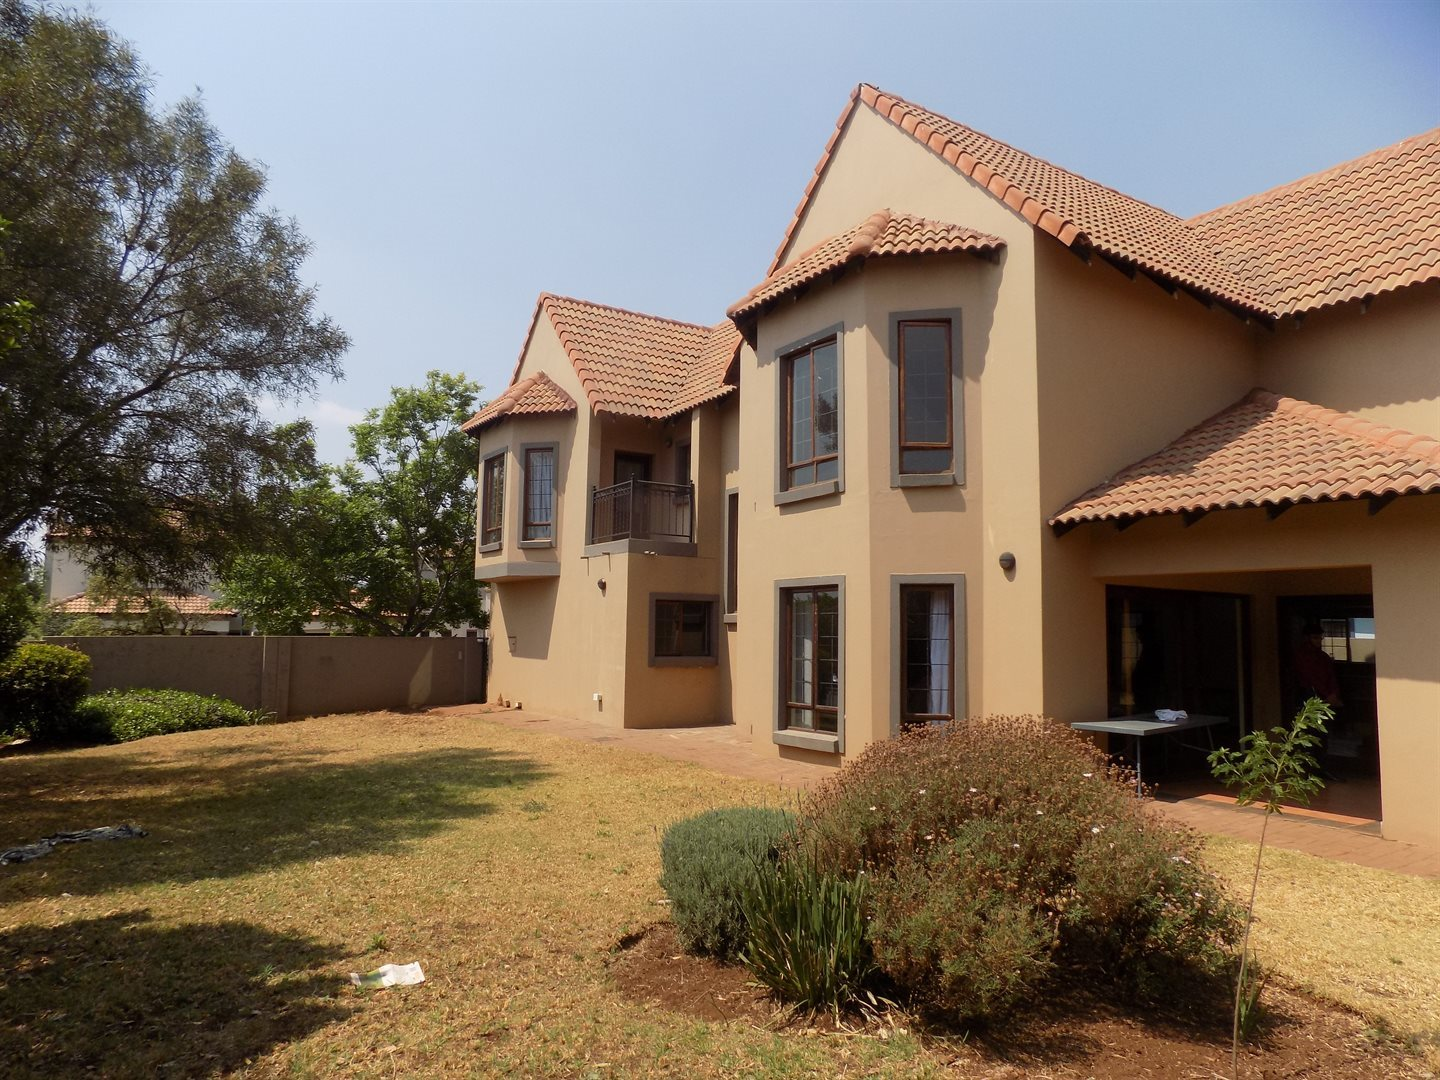 Raslouw Manor property for sale. Ref No: 13535817. Picture no 1